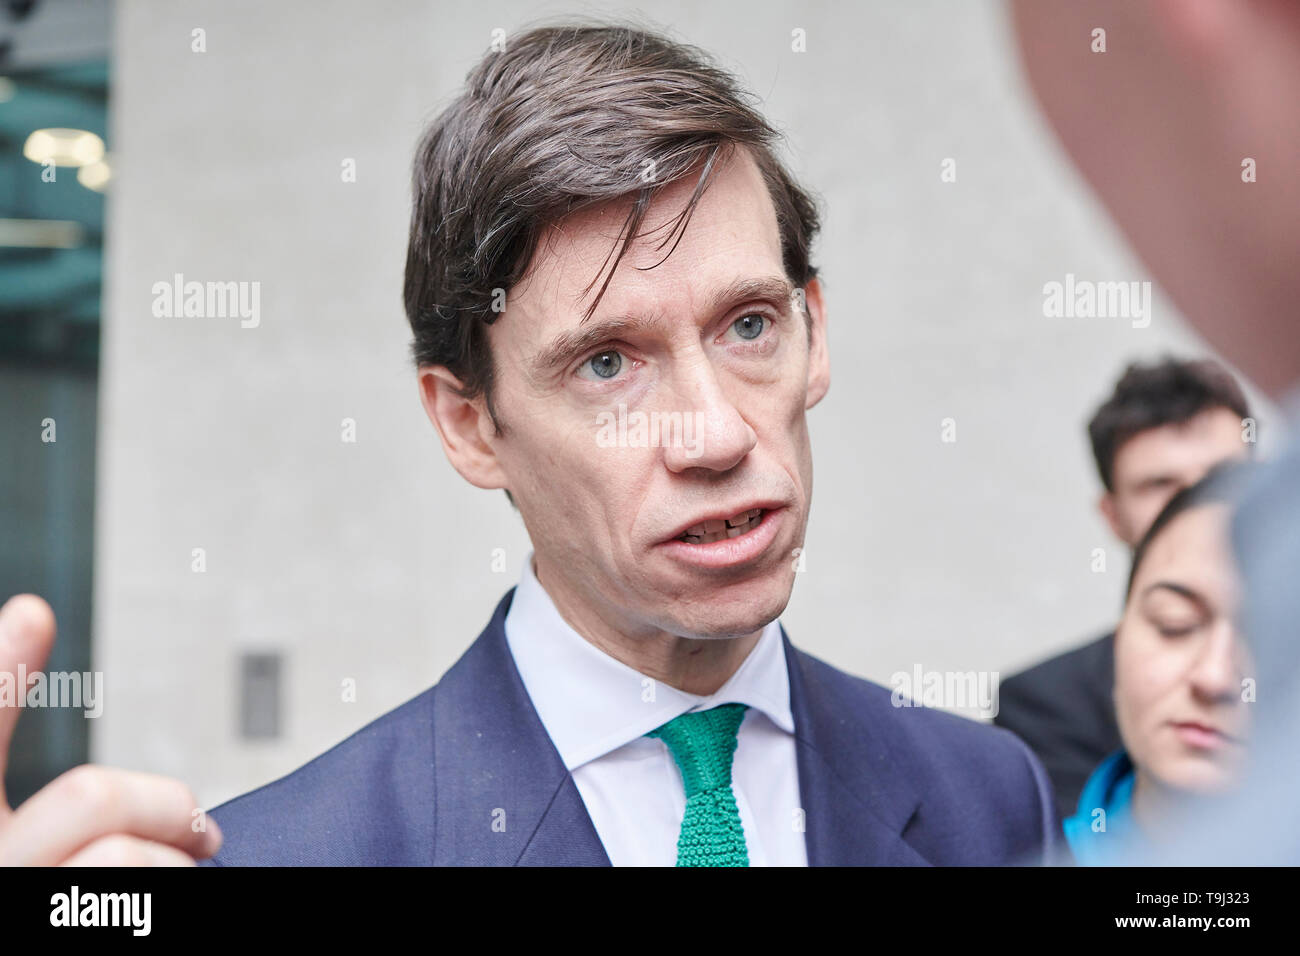 London, UK. 19th May 2019.  Rory Stewart Secretary of State for International Development,   leaves the  BBC,  Broadcasting House, after  his appearance on the Andrew Marr Show. Credit: Thomas Bowles/Alamy Live News Stock Photo